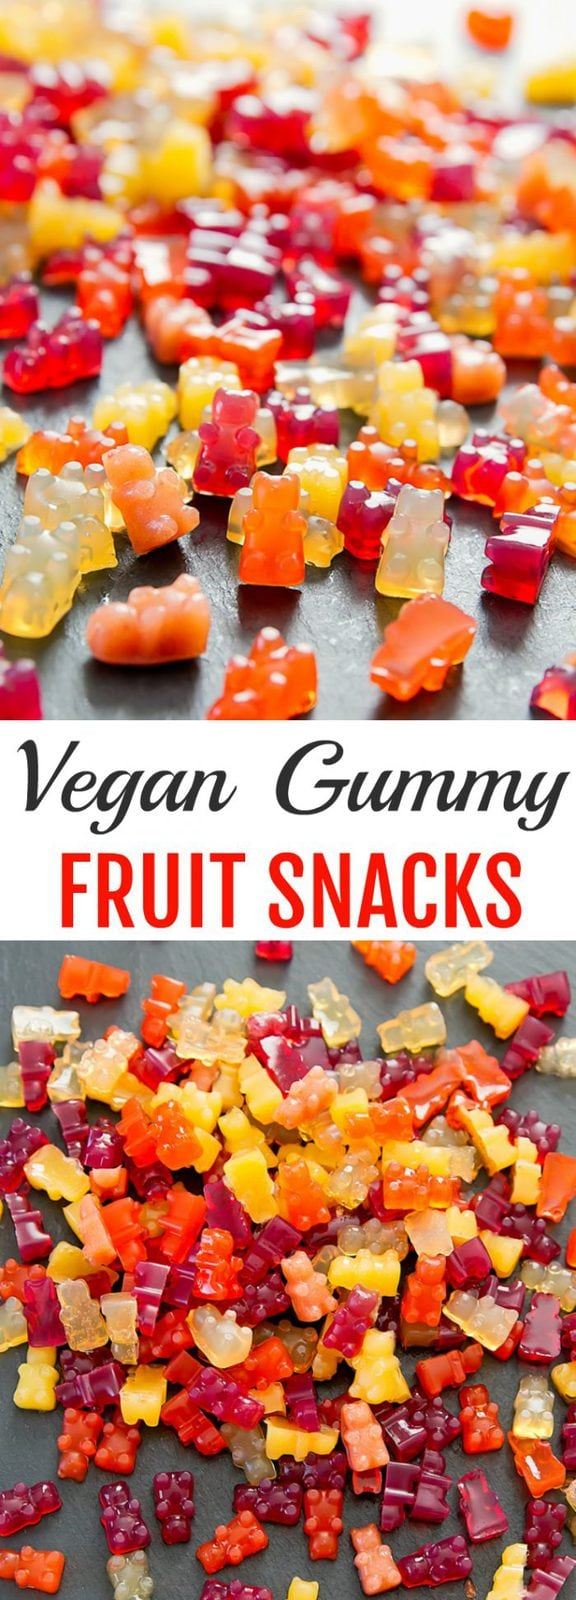 Homemade Vegan Gummy Fruit Snacks